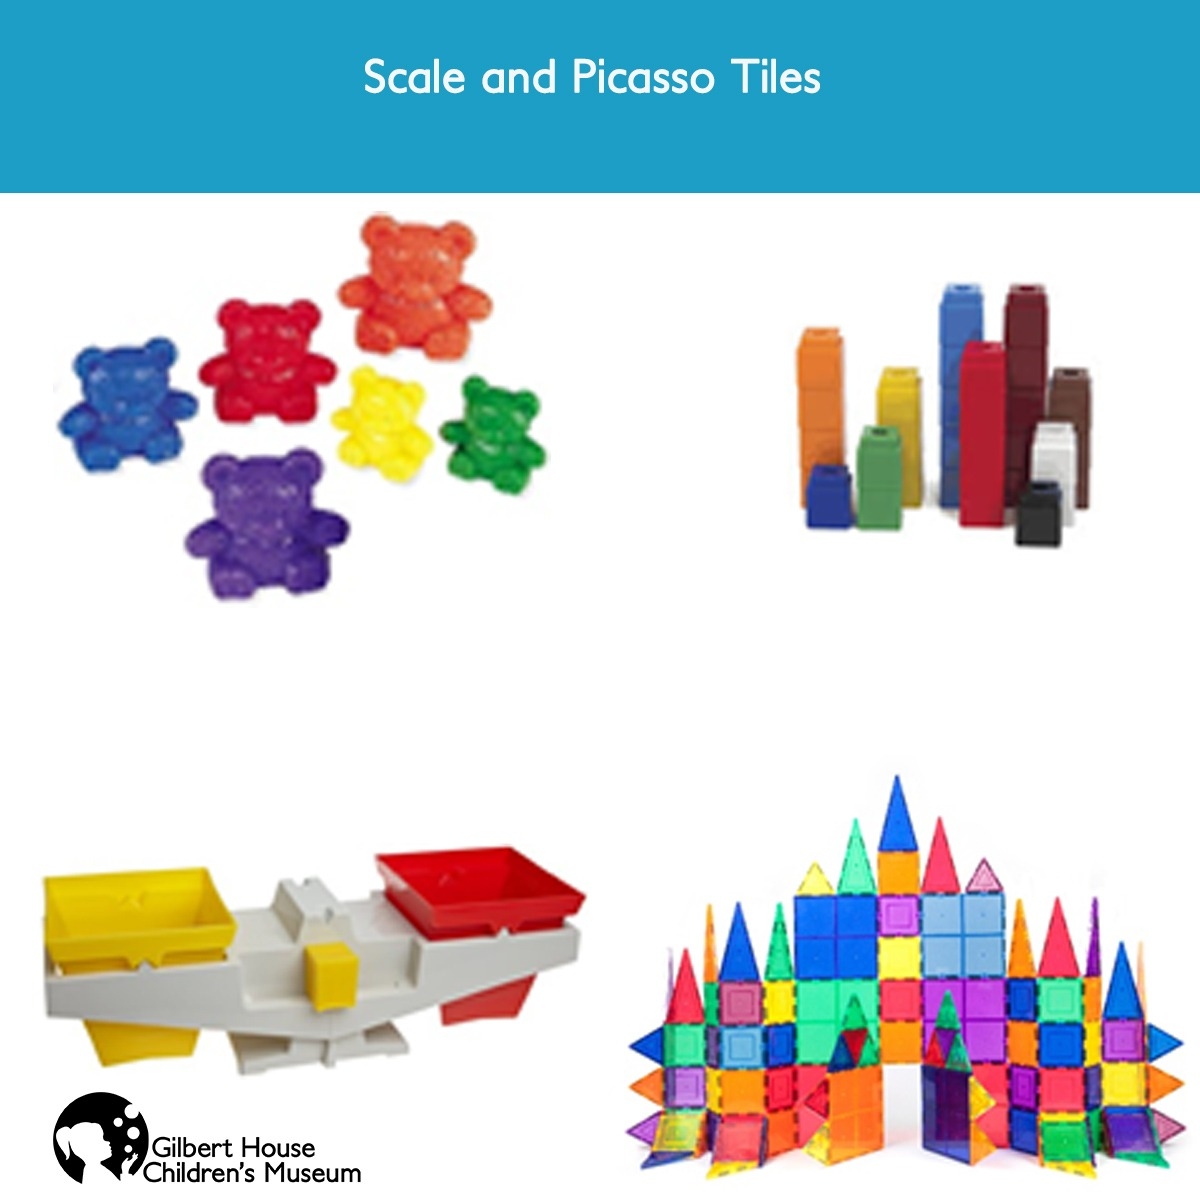 Scale and Picasso Tiles